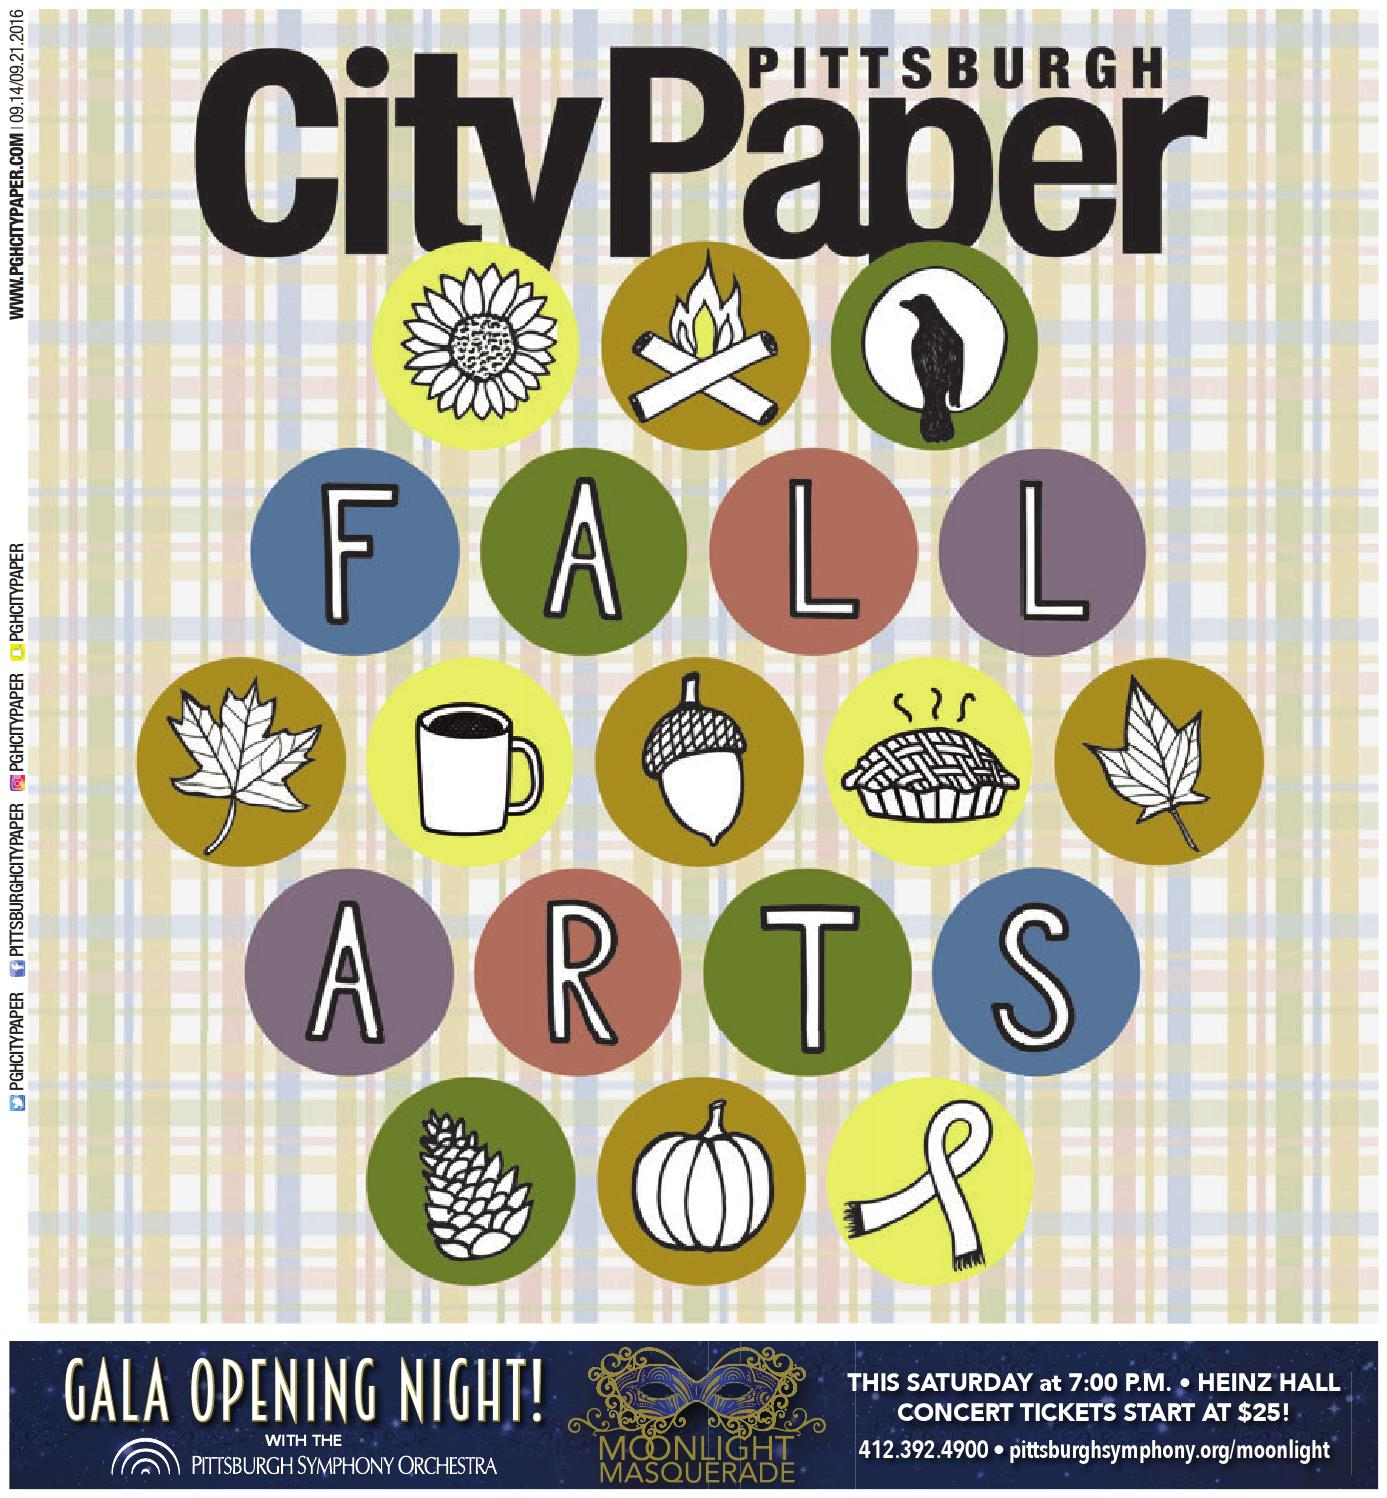 September 14 2016 Pittsburgh City Paper by Pittsburgh City Paper